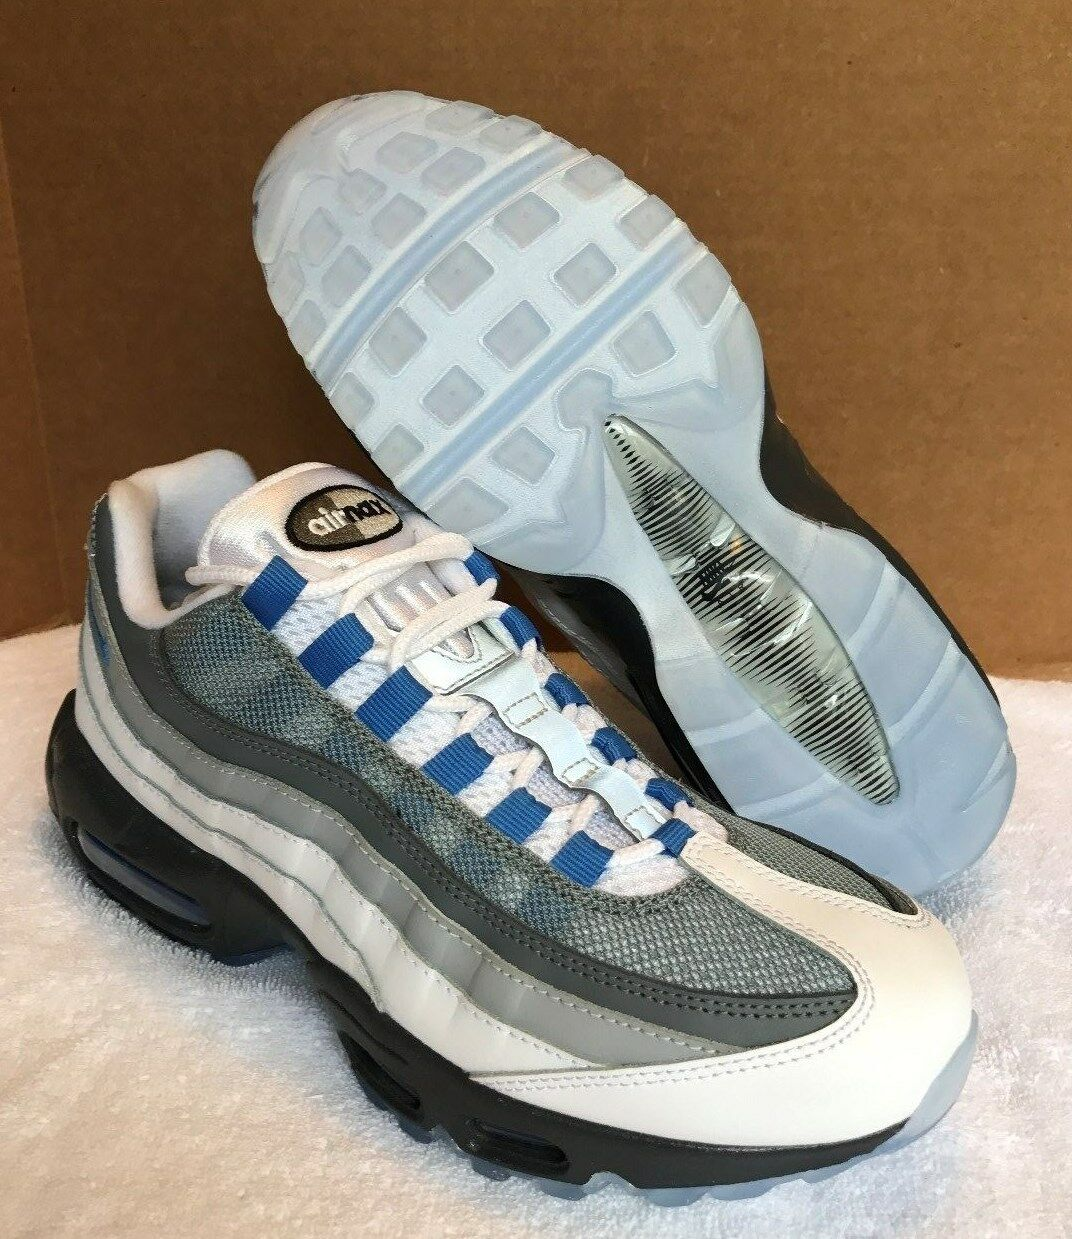 half off c1c8d 13255 ... ireland nike id shoes air max 95 womens shoes id size 8 white blue grey  818593